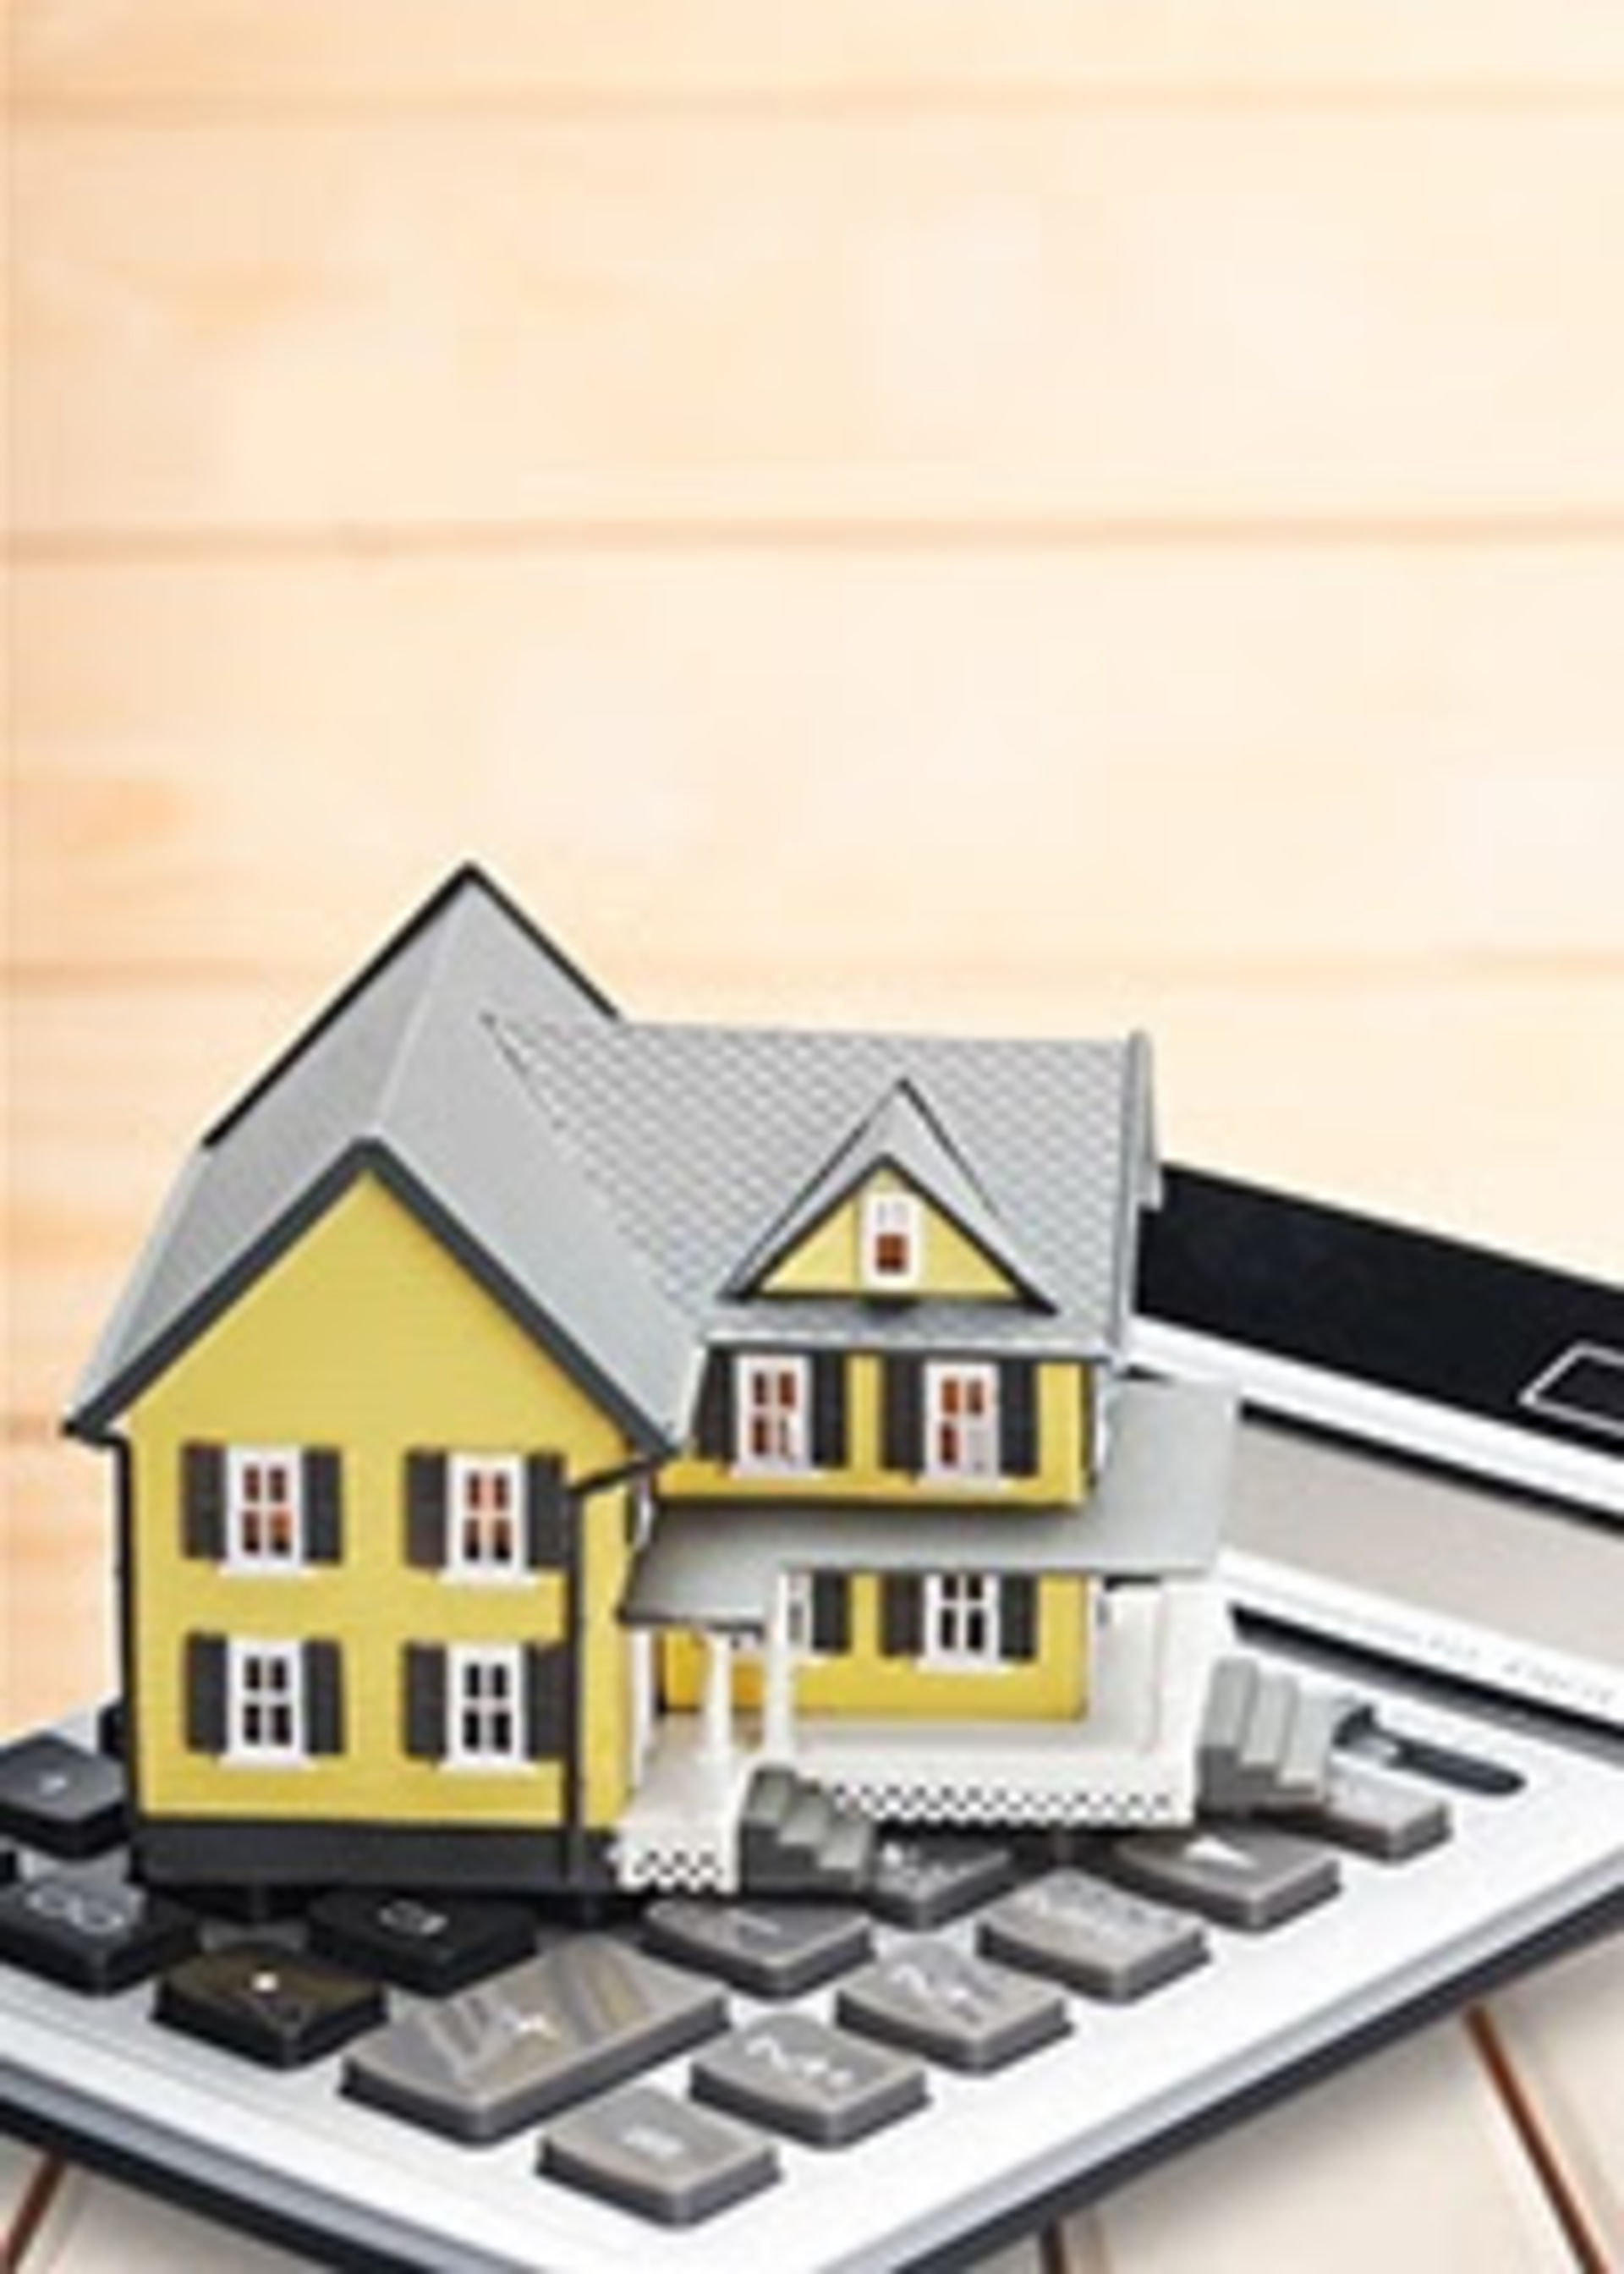 Down Payment Dilemma: How Do You Know How Much to Put Down On A Home?